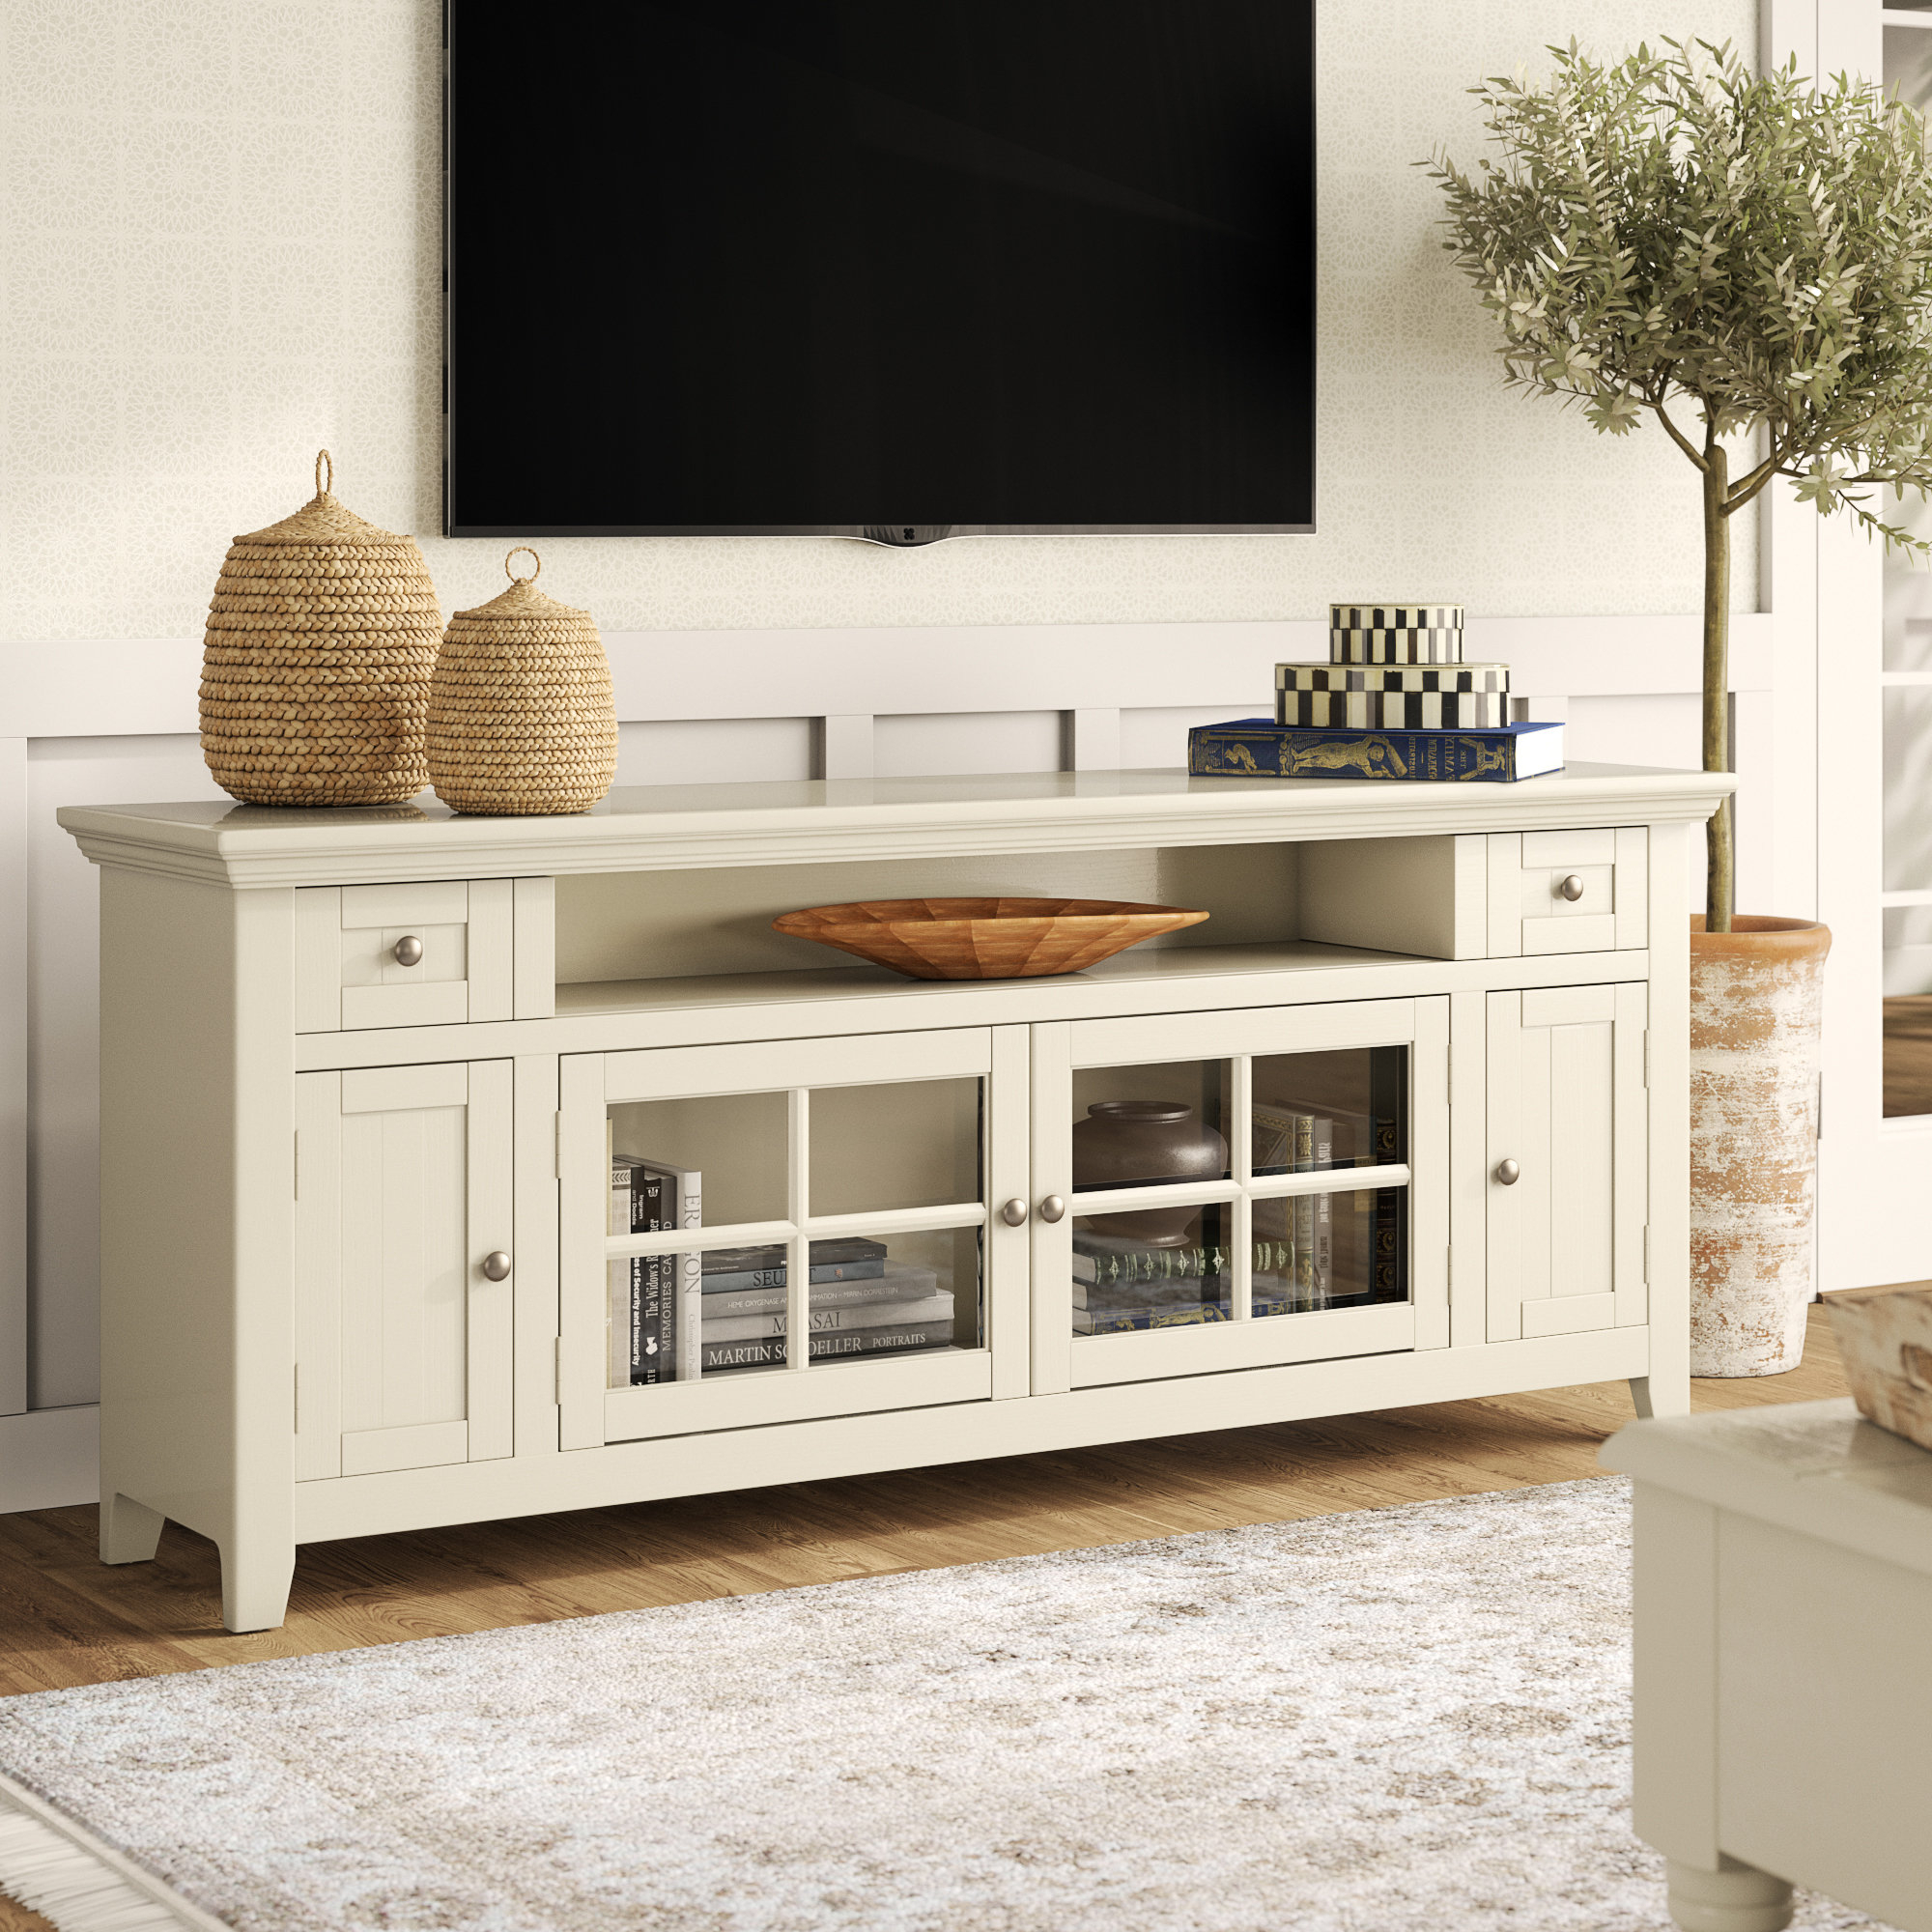 """Calila Tv Stand For Tvs Up To 70"""" Intended For Most Up To Date Colefax Vintage Tv Stands For Tvs Up To 78"""" (#3 of 20)"""